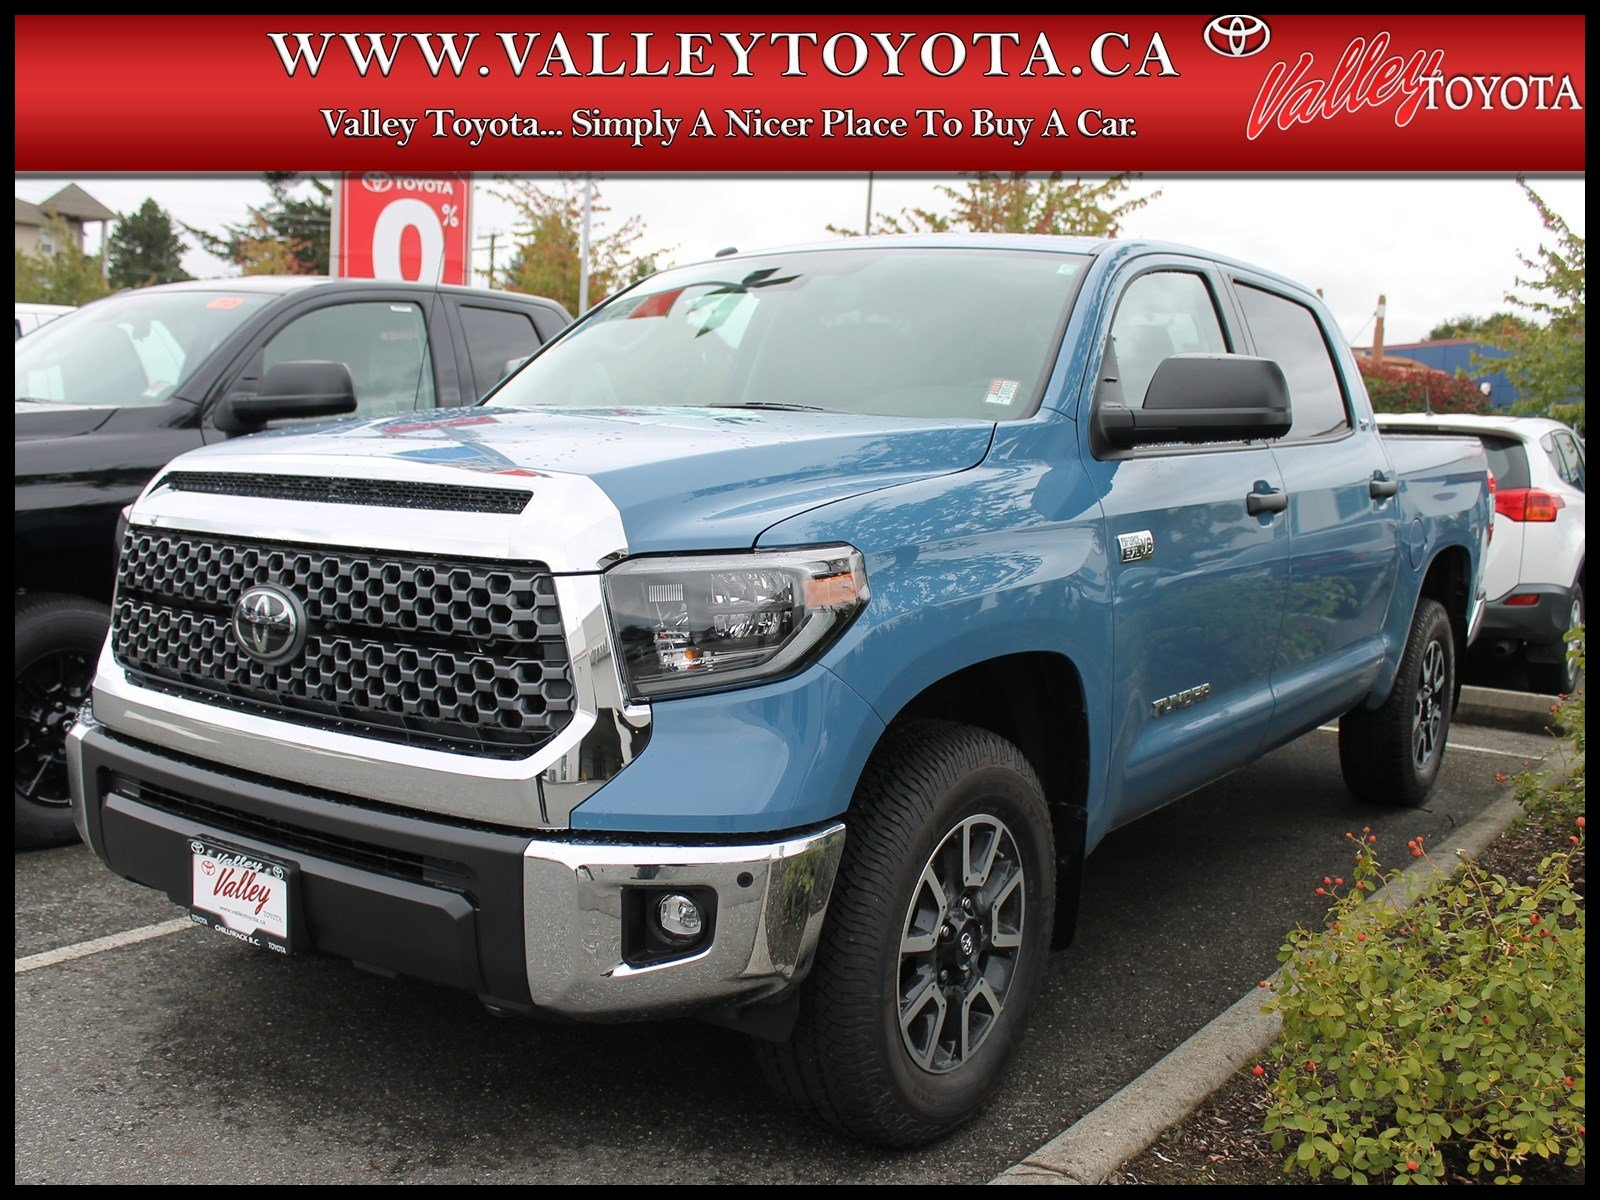 New 2019 Toyota Tundra TRD f Road Manager Demo